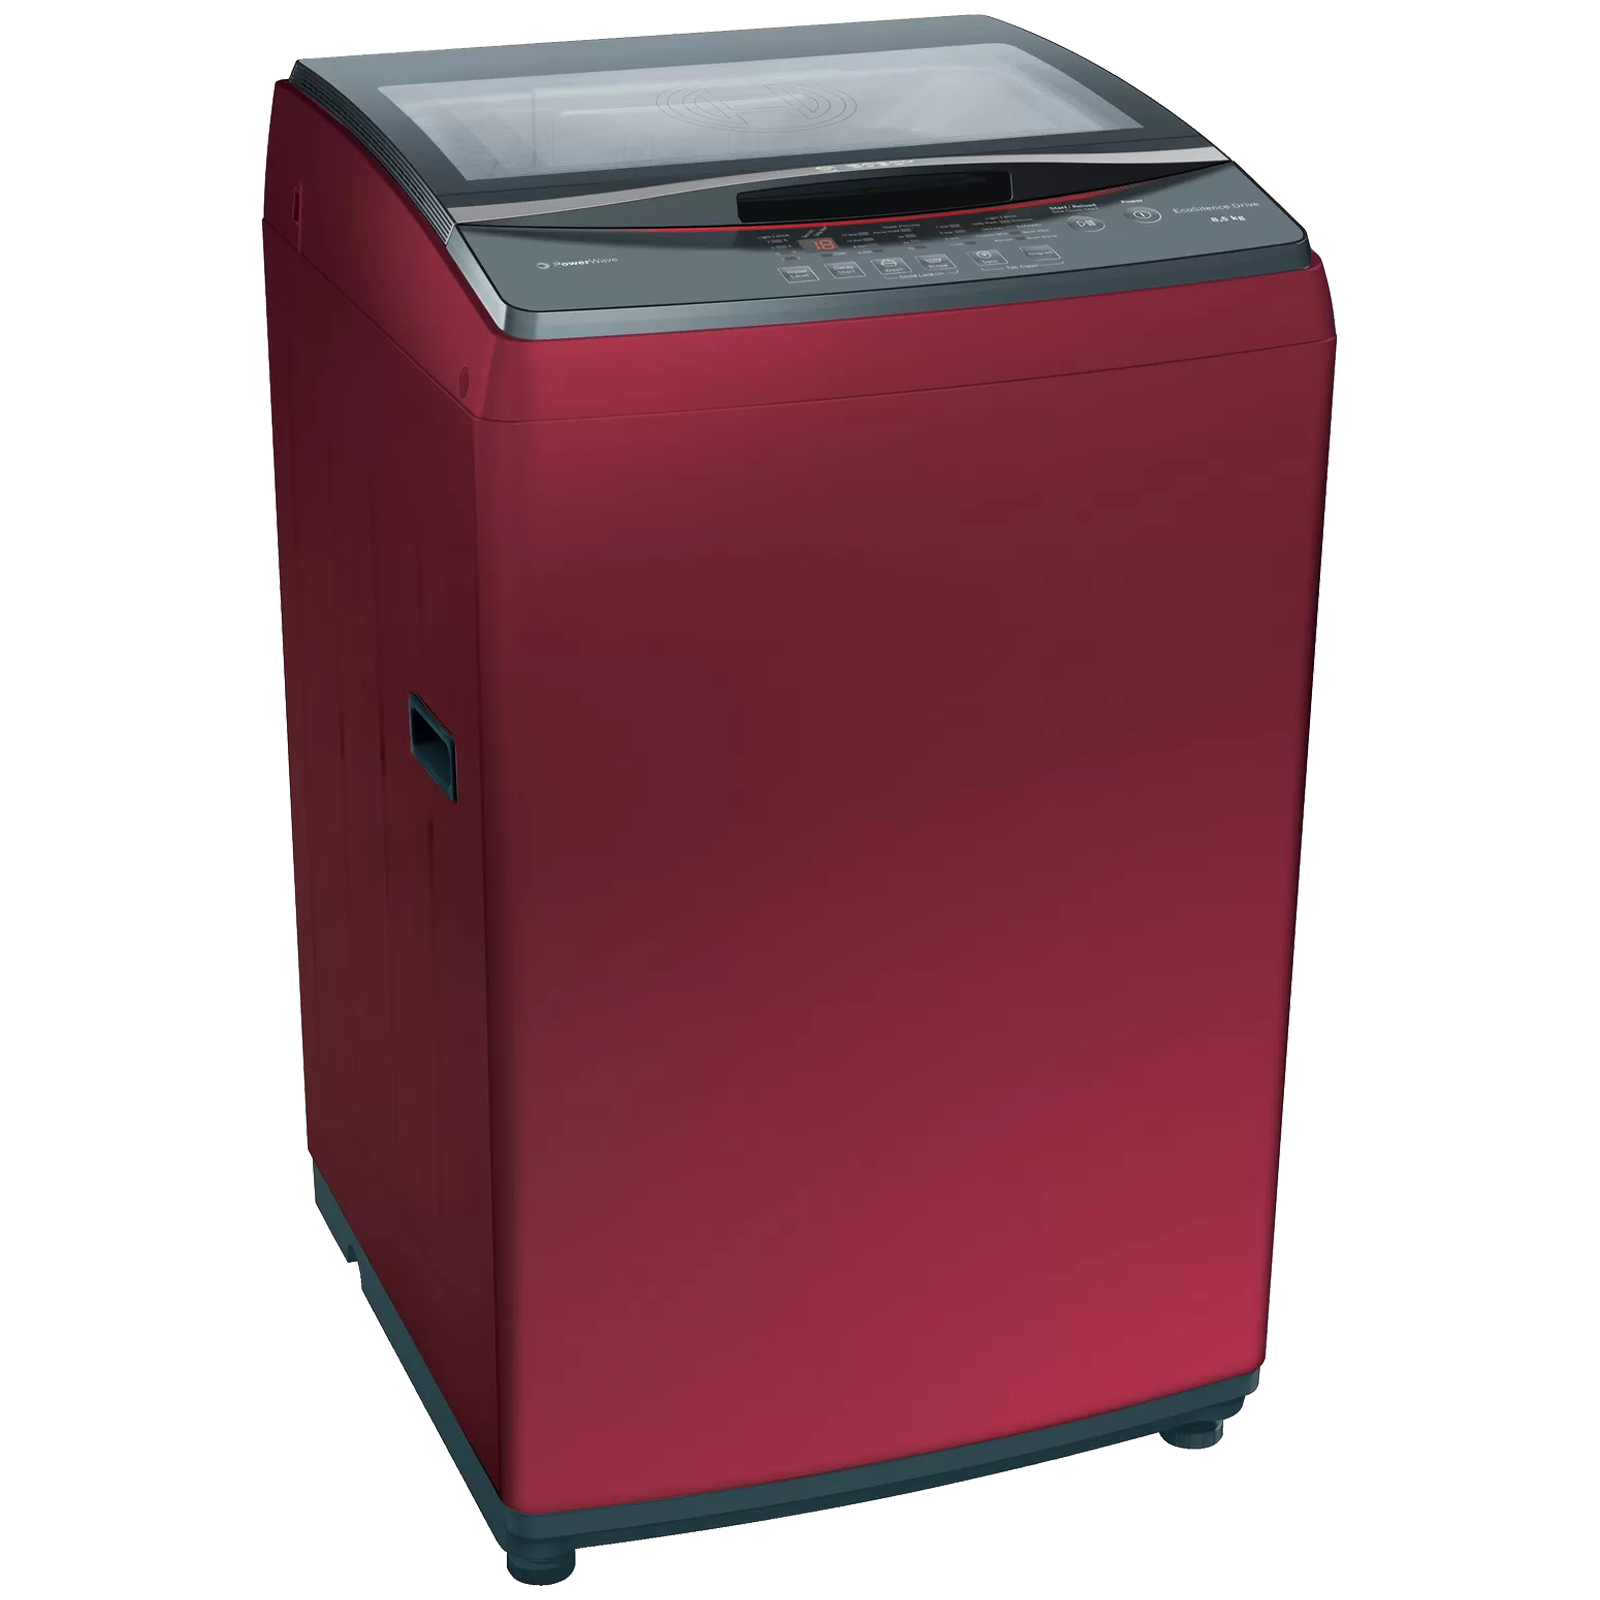 Bosch Serie 4 8.5 kg 5 Star Fully Automatic Top Load Washing Machine (Multiple Water Protection, WOE854C1IN, Metallic Red)_1